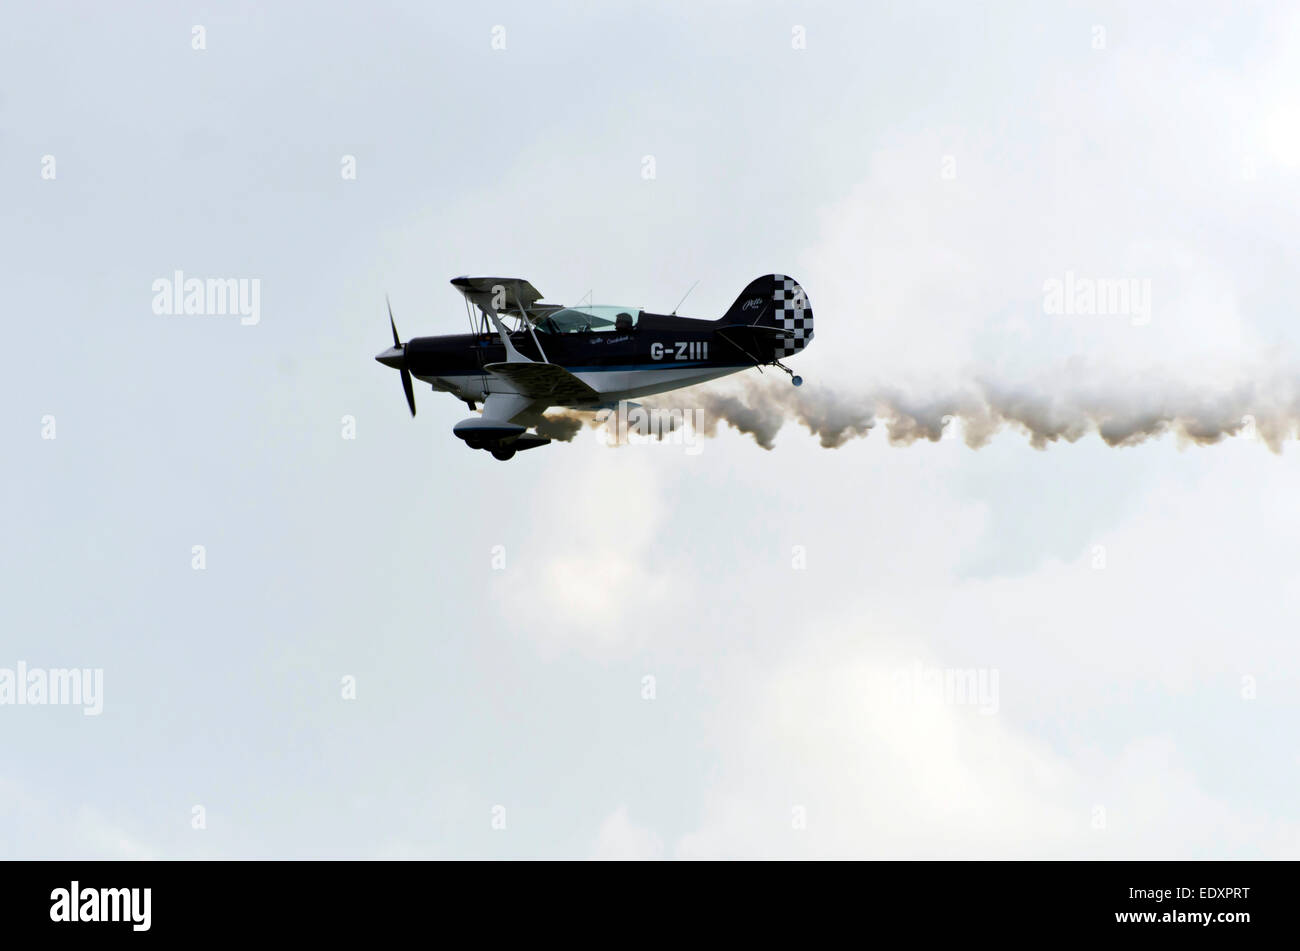 Member of the Wildcat Acrobats display team flying a Pitts S-2 bi-plane at Leuchars Air Show, Scotland, 2013. - Stock Image